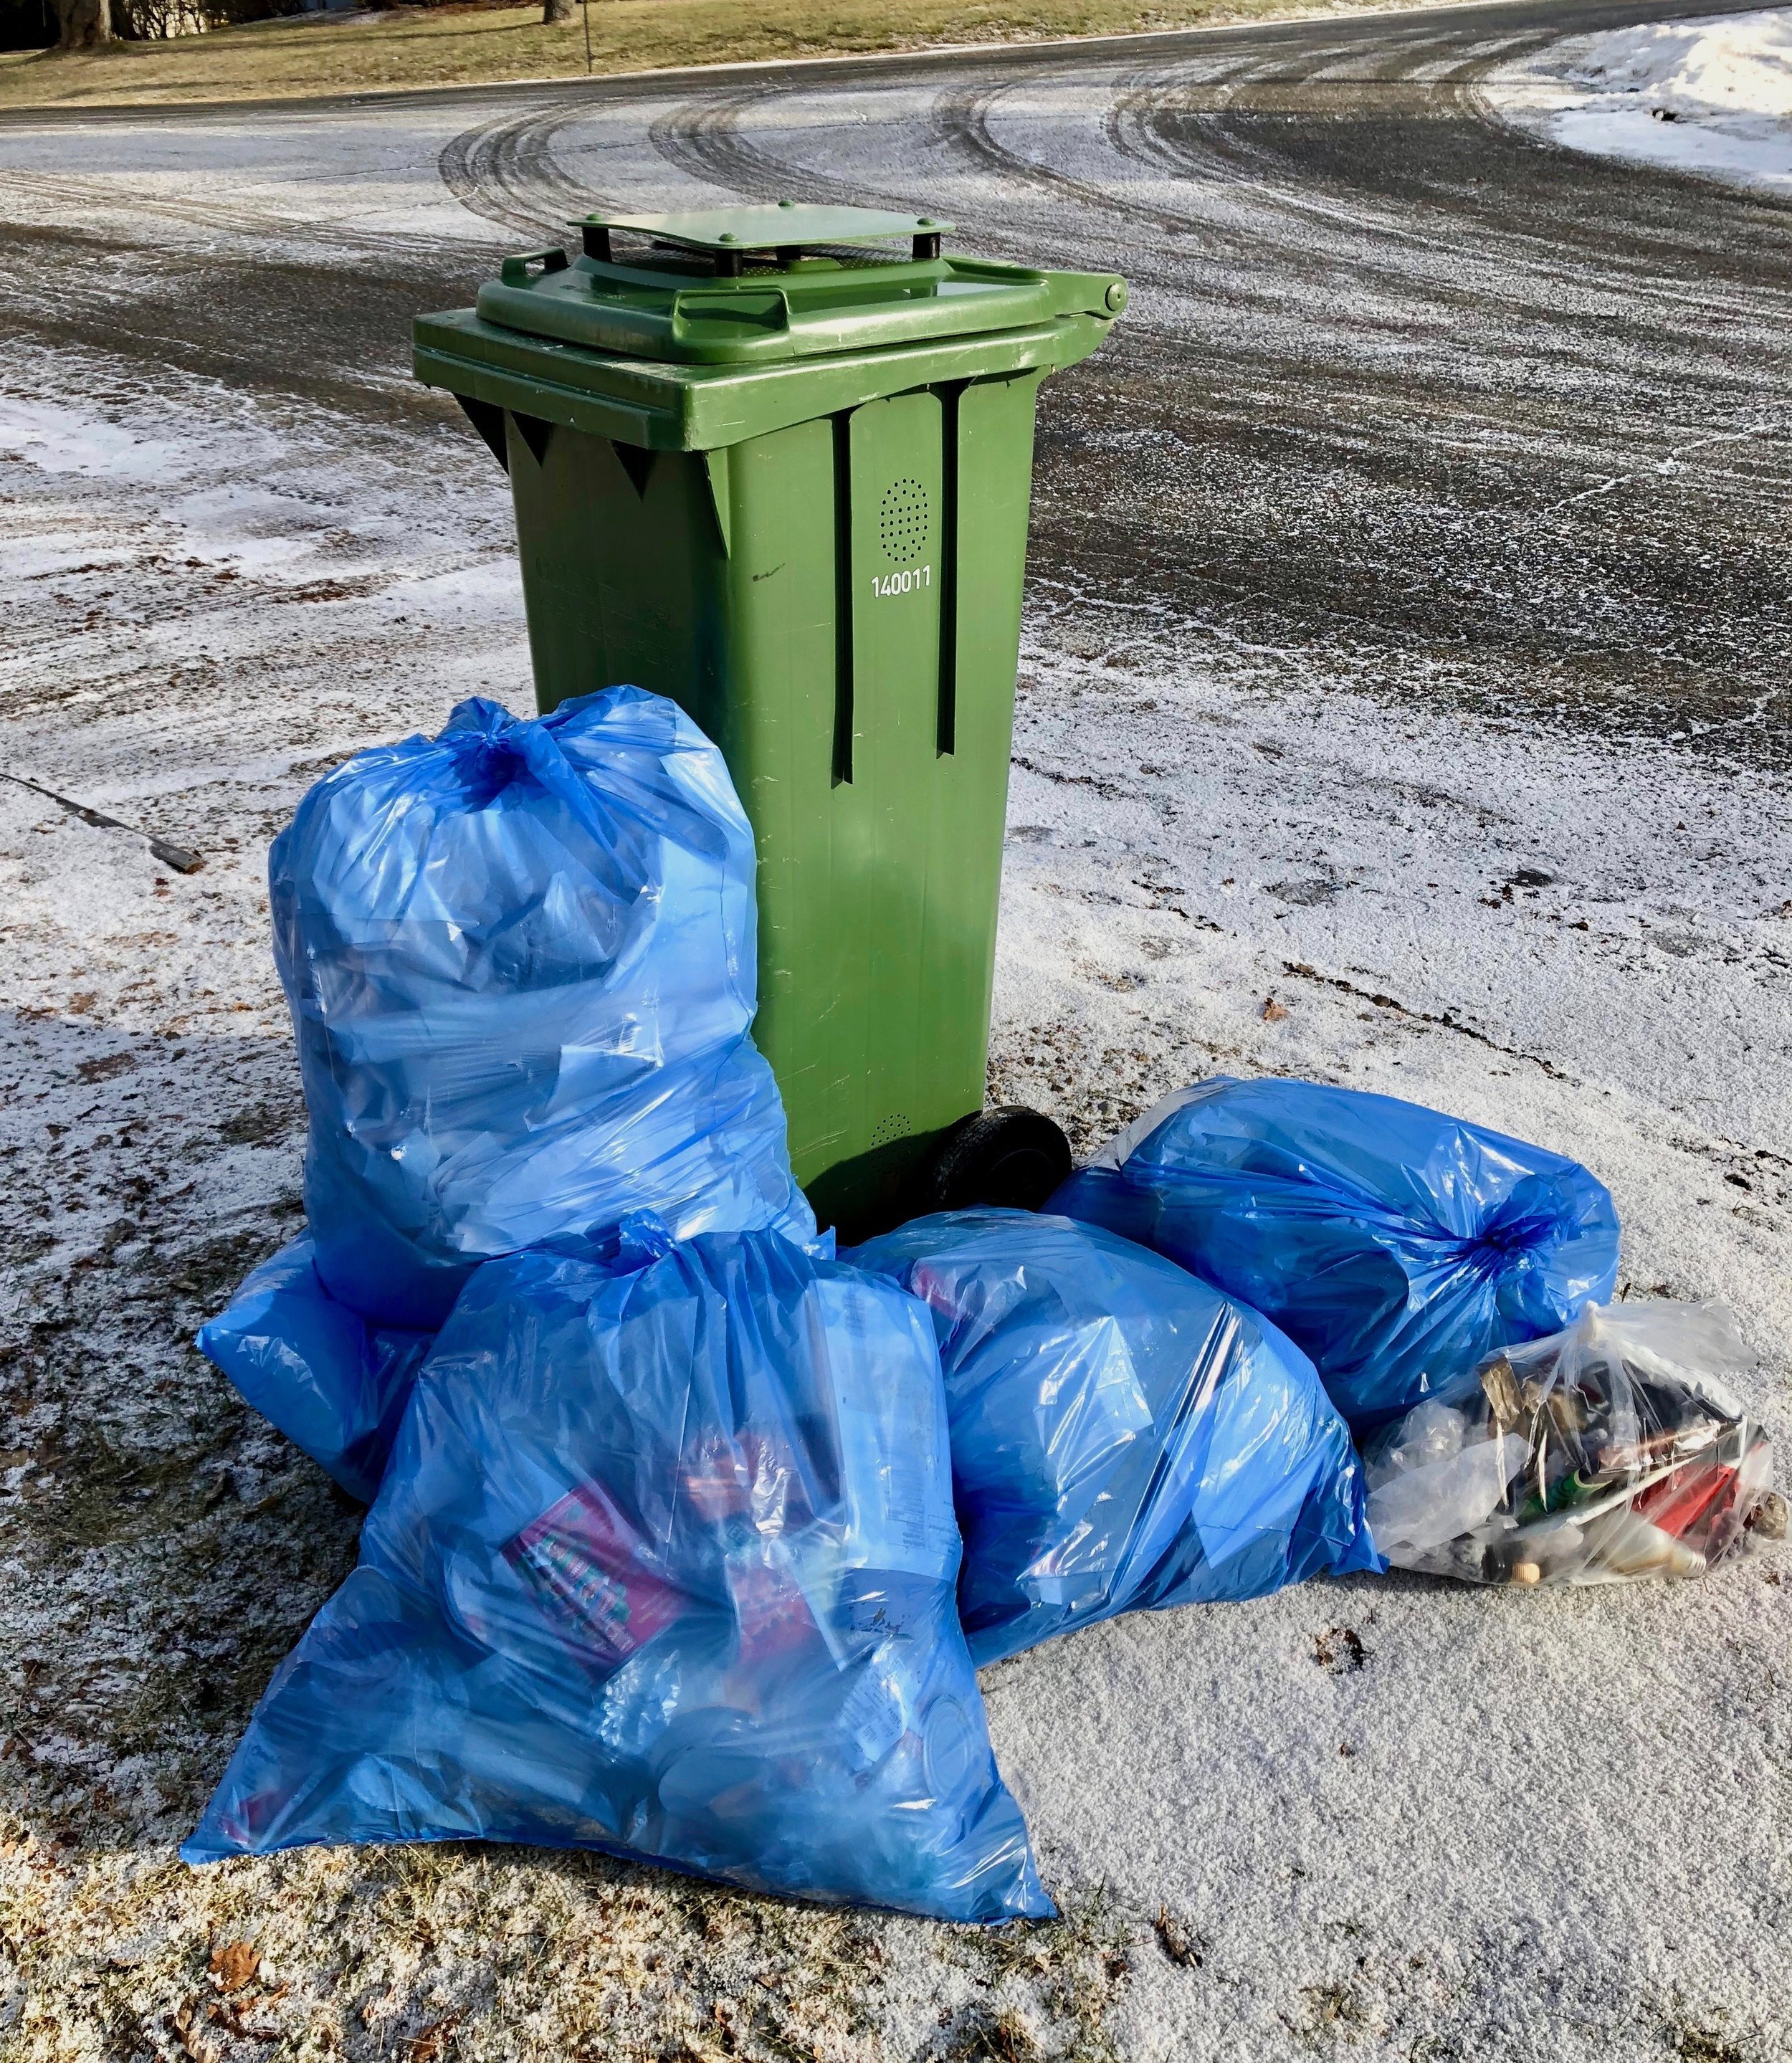 The tall green bin is for food waste to be composted - not for garbage. The blue bags hold recycling.Only the small clear plastic bag contains actual garbage.